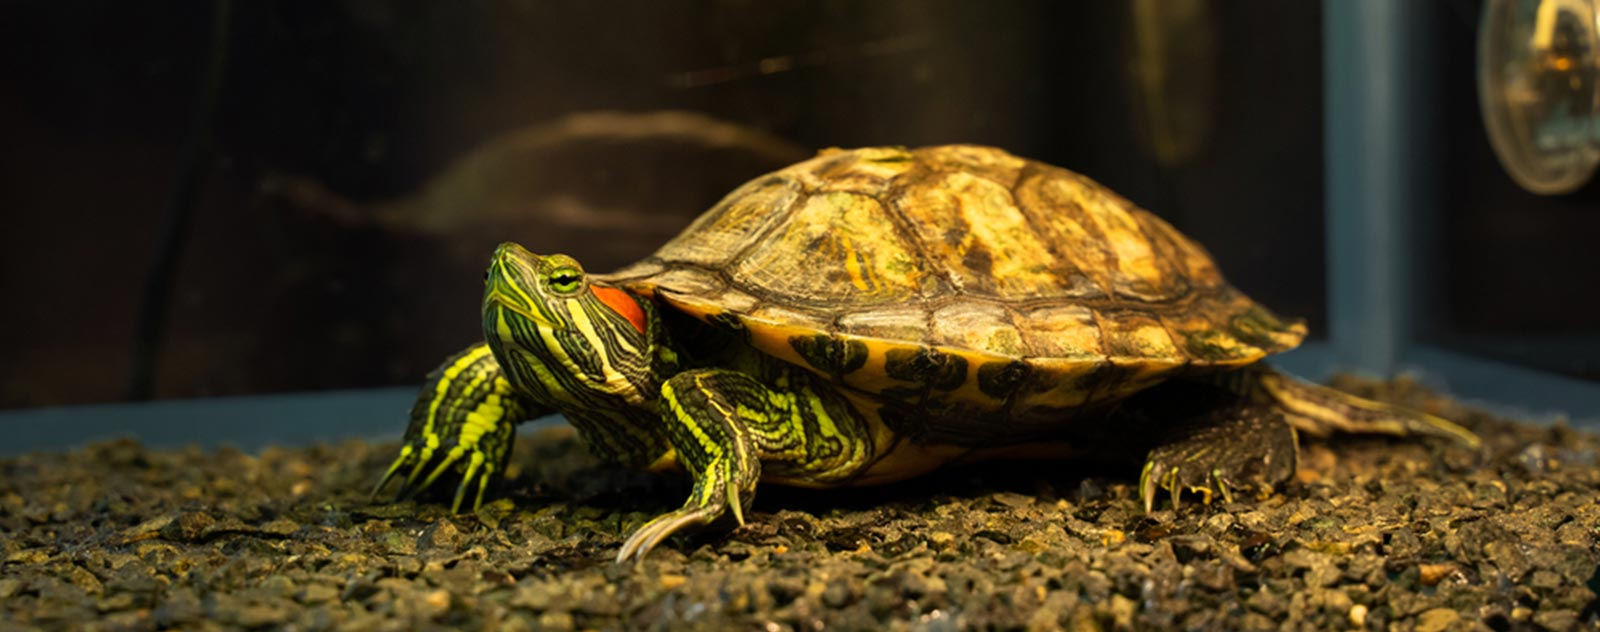 lampes-chauffantes-tortue